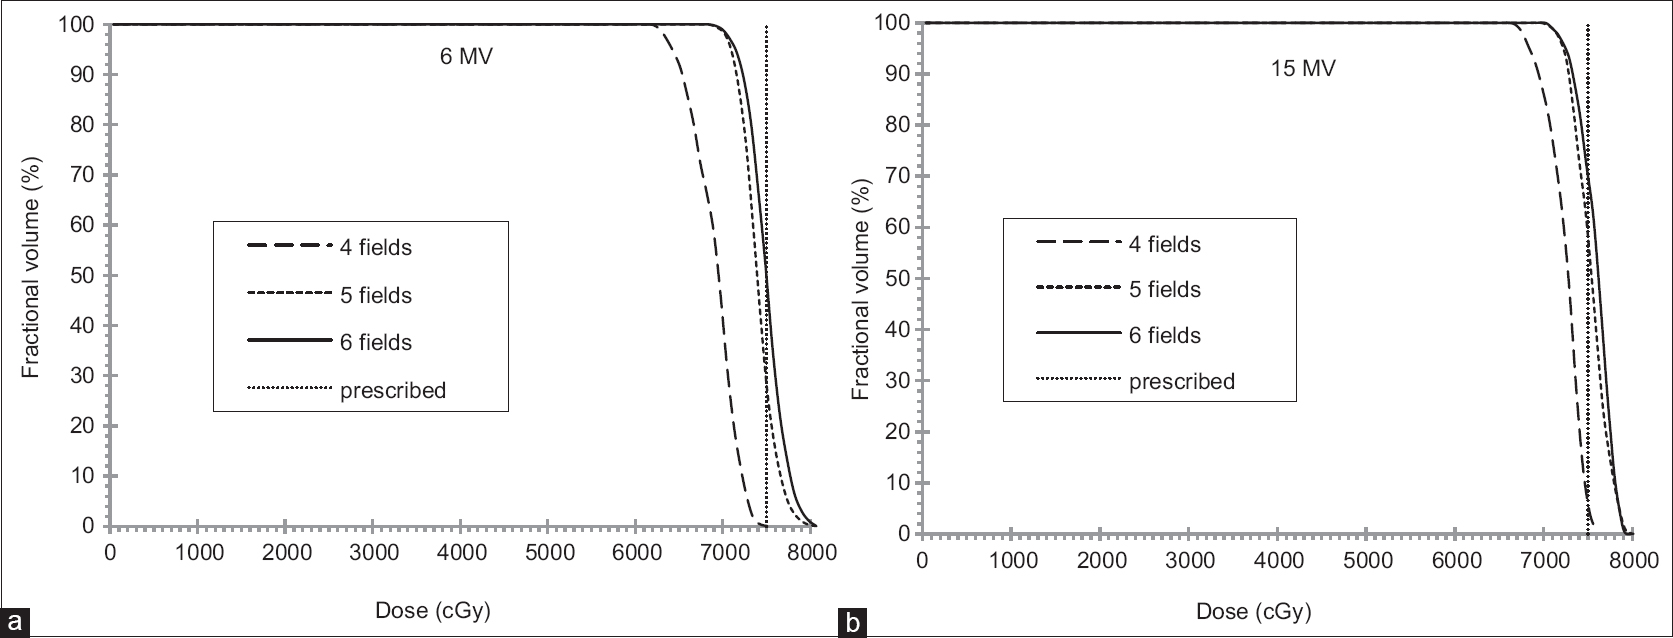 Figure 10: Dose-volume histogram data showing the relationship between the number of beams and the planning target volume coverage for (a) 6 MV and (b) 15 MV photon beams for the bilateral Ti6Al4V hip prosthesis case. More beams produce a better dose distribution